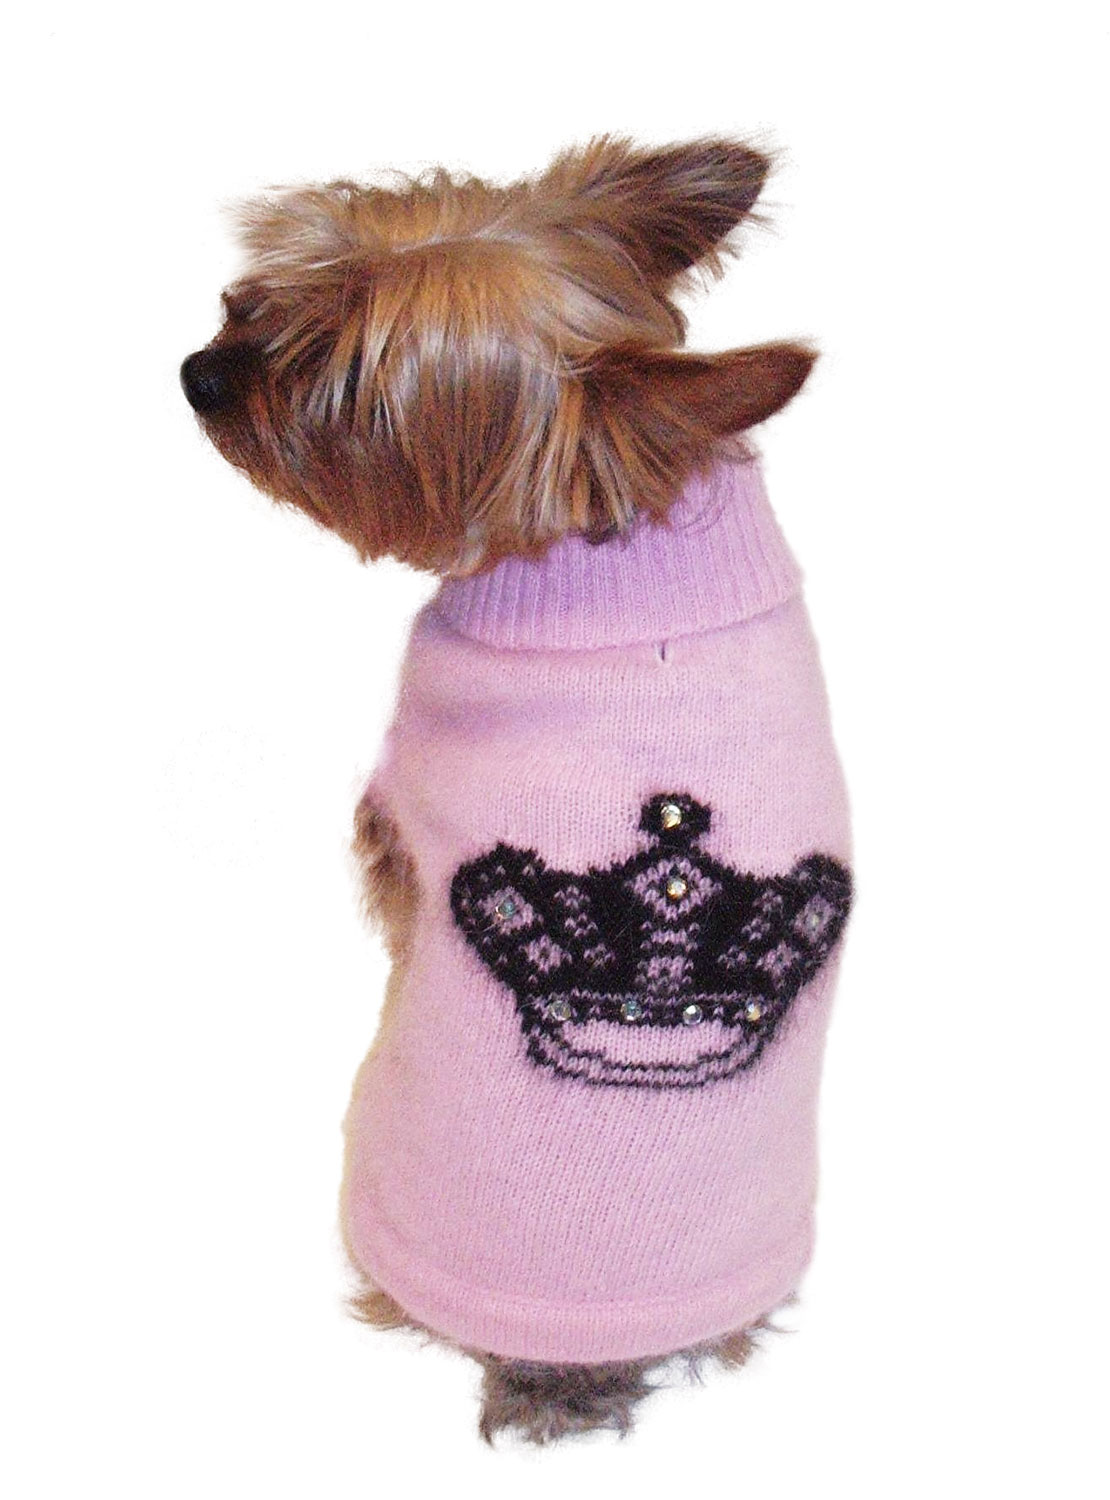 The Dog Squad Turtleneck Sweater, Pink With Black Crown, X-Small